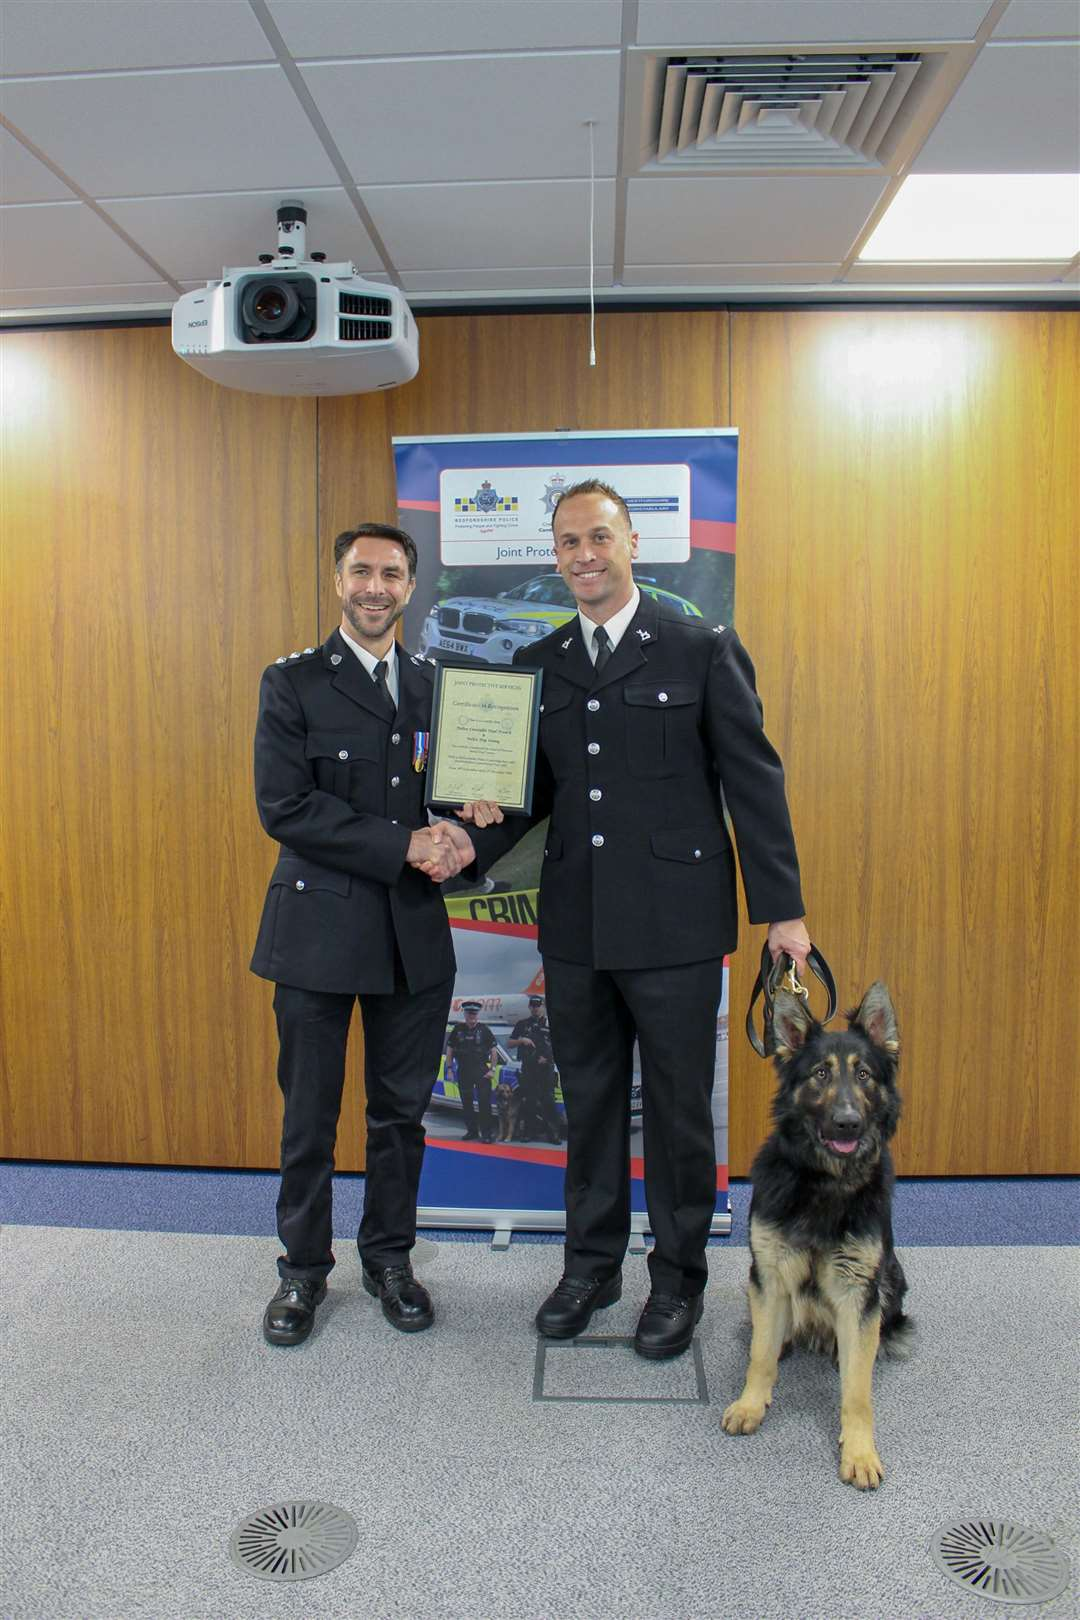 Chief Inspector Robin Sissons (left) awarding the certificate to Paul French and police dog Sonny (6158654)